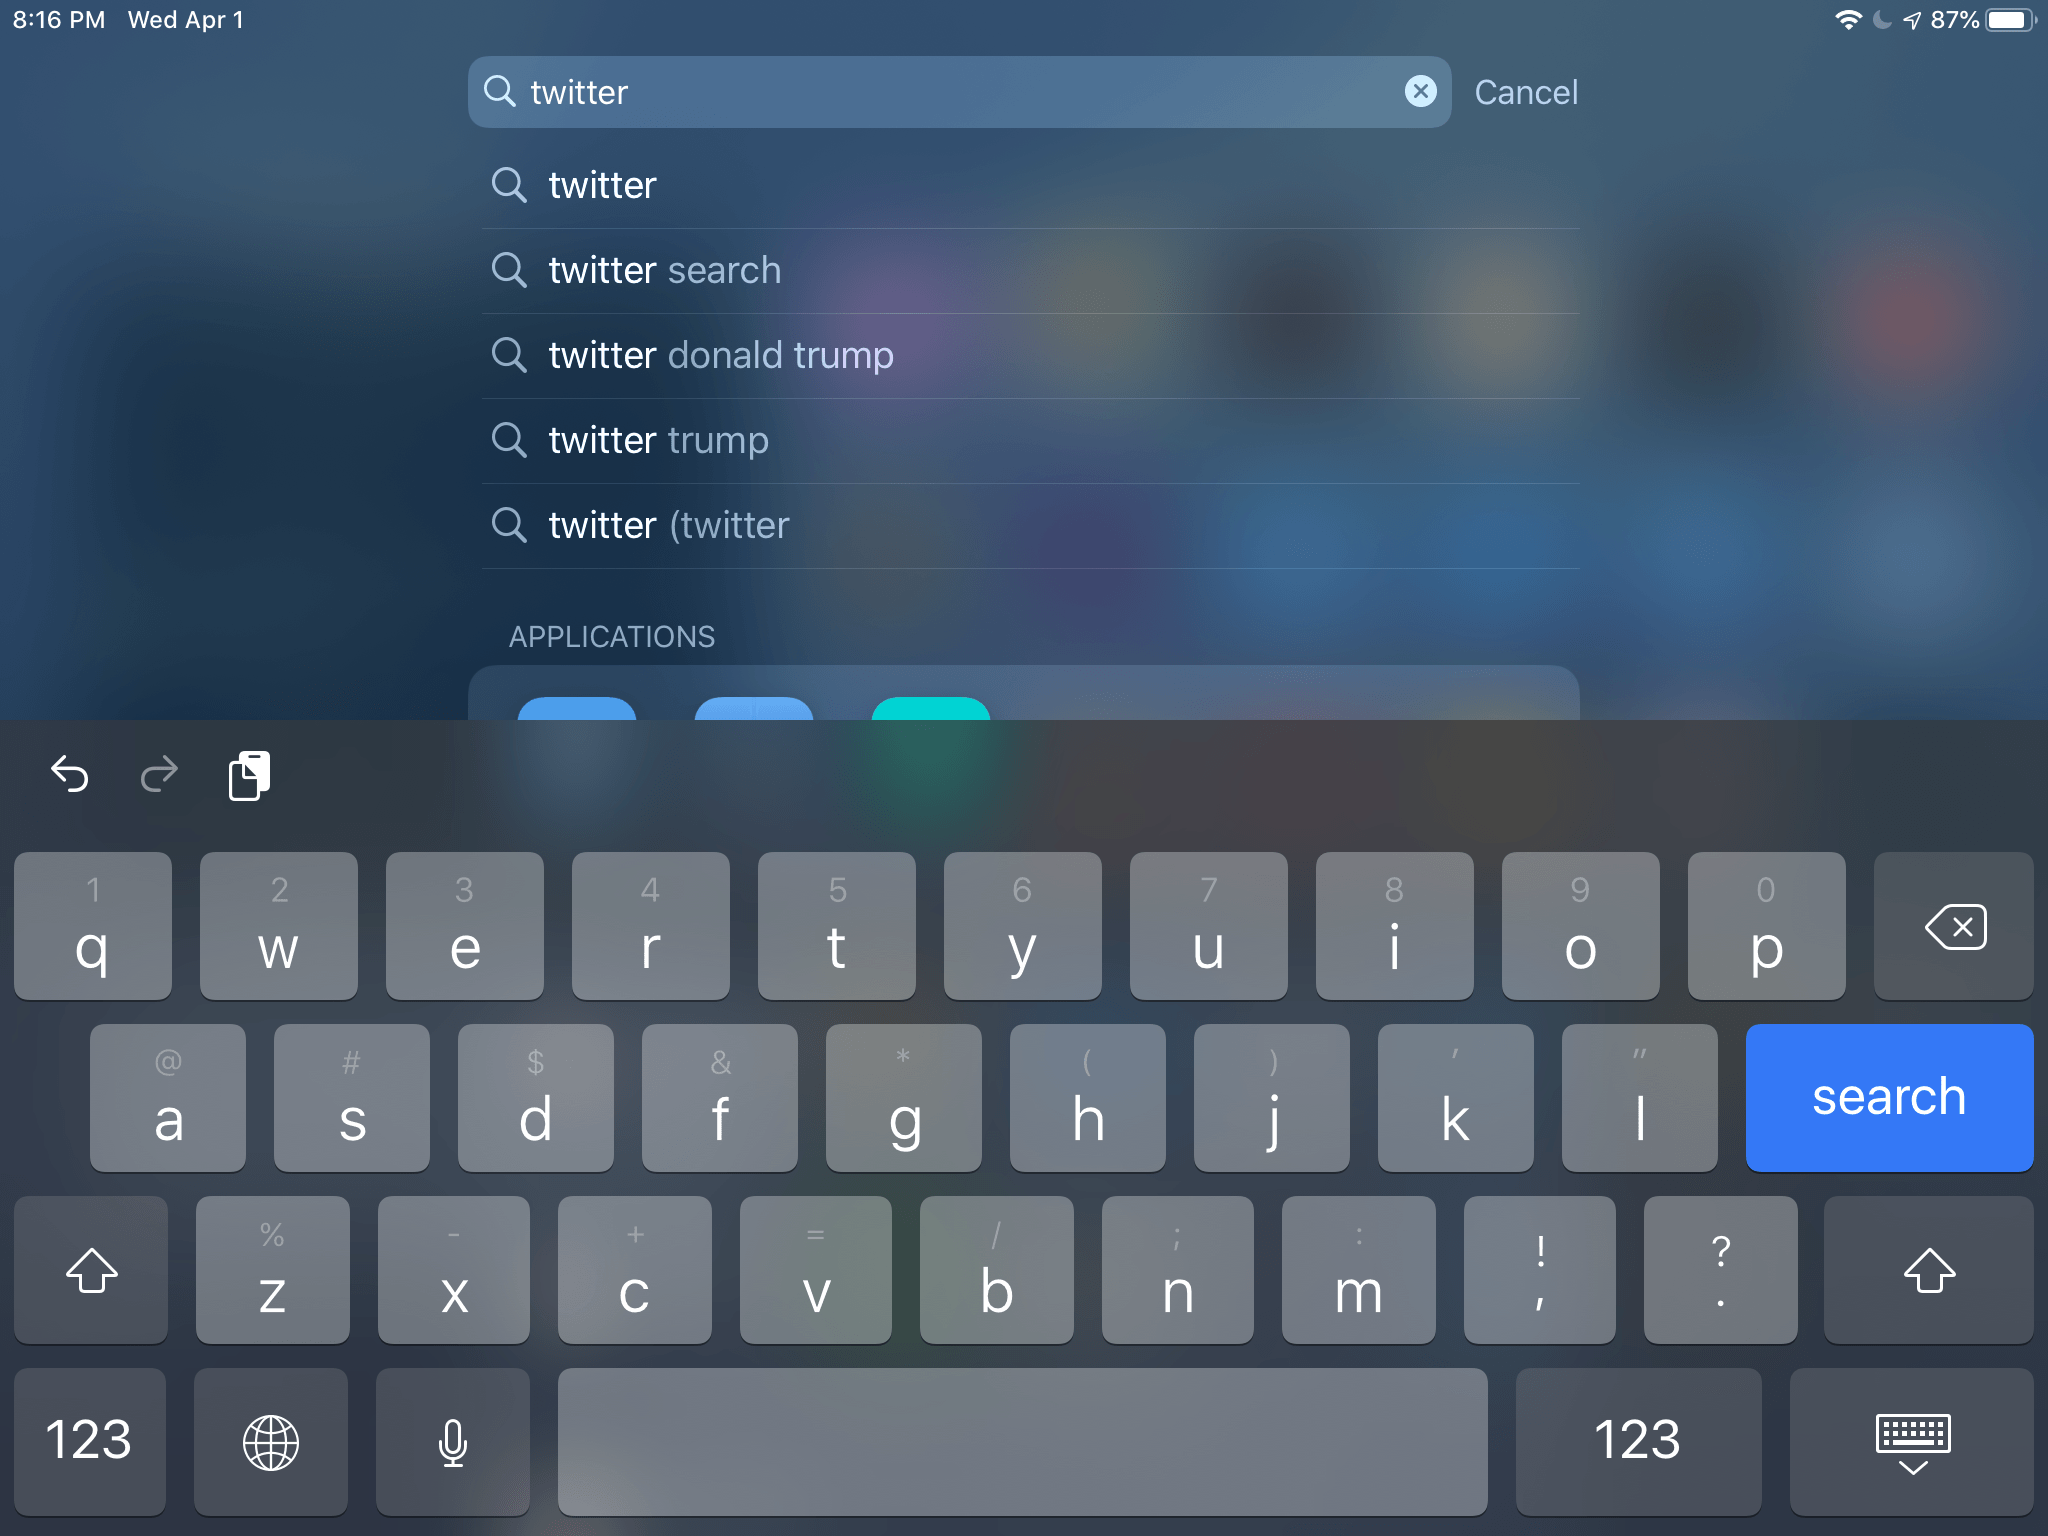 Searching for an app using the software keyboard in landscape mode is problematic on the mini.